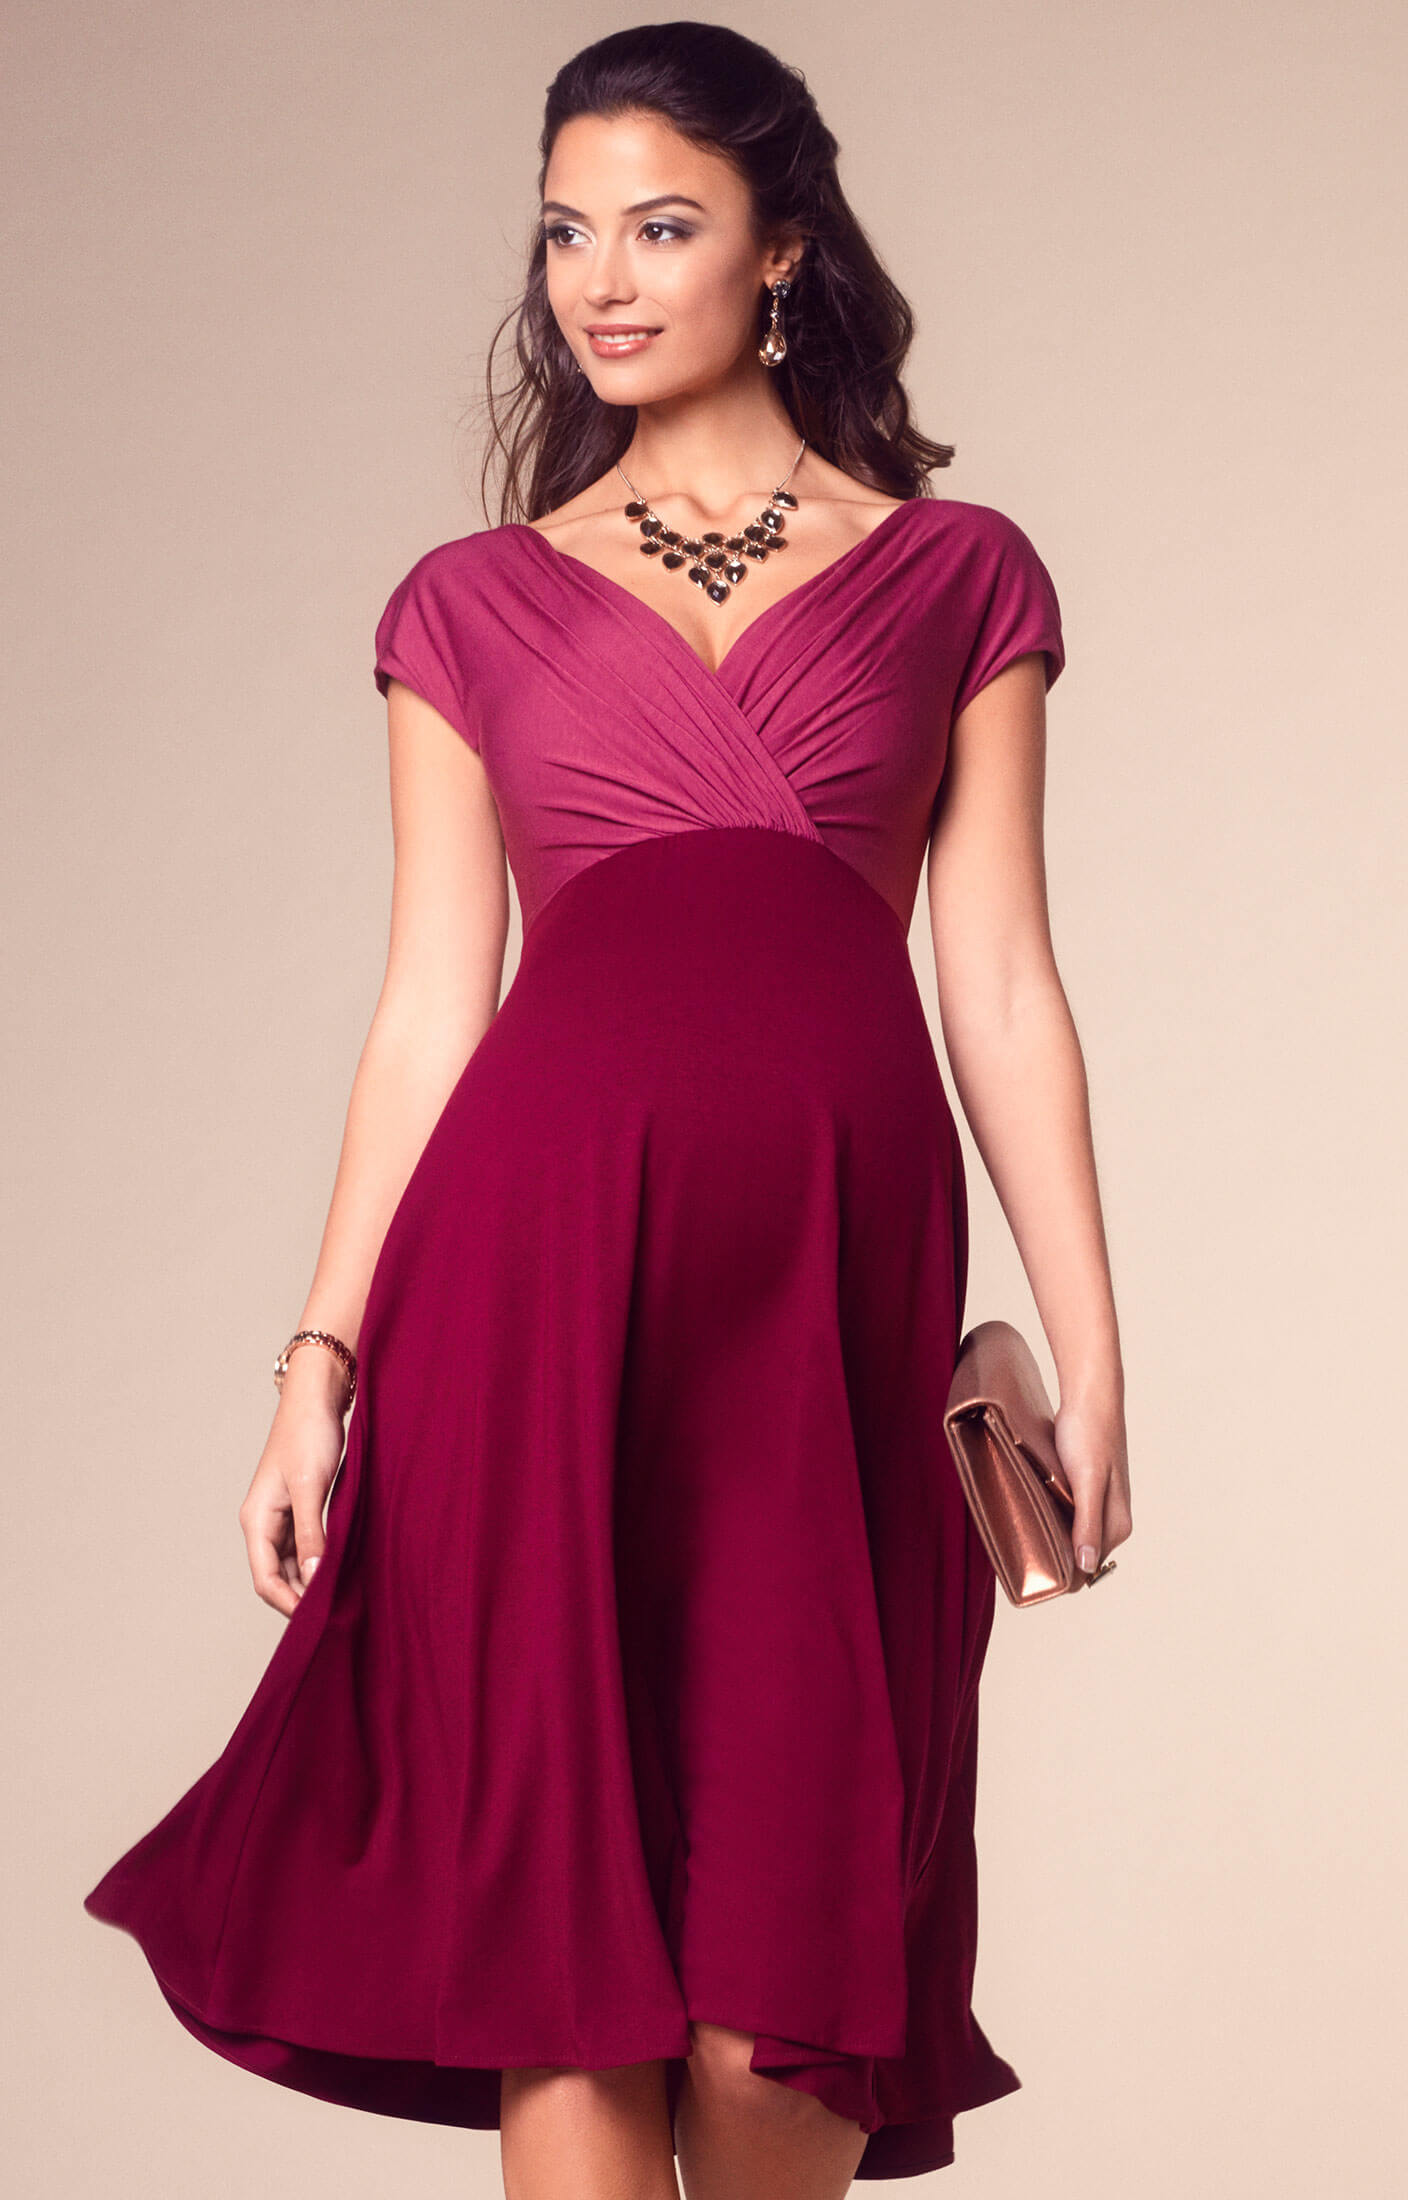 Discover stylish plus size maternity dresses from Bump It Up. In sizes 14 to 34, shop on-trend styles that will fit and flatter your growing bump. Discover stylish plus size maternity dresses from Bump It Up. In sizes 14 to 34, shop on-trend styles that will fit and flatter your growing bump.